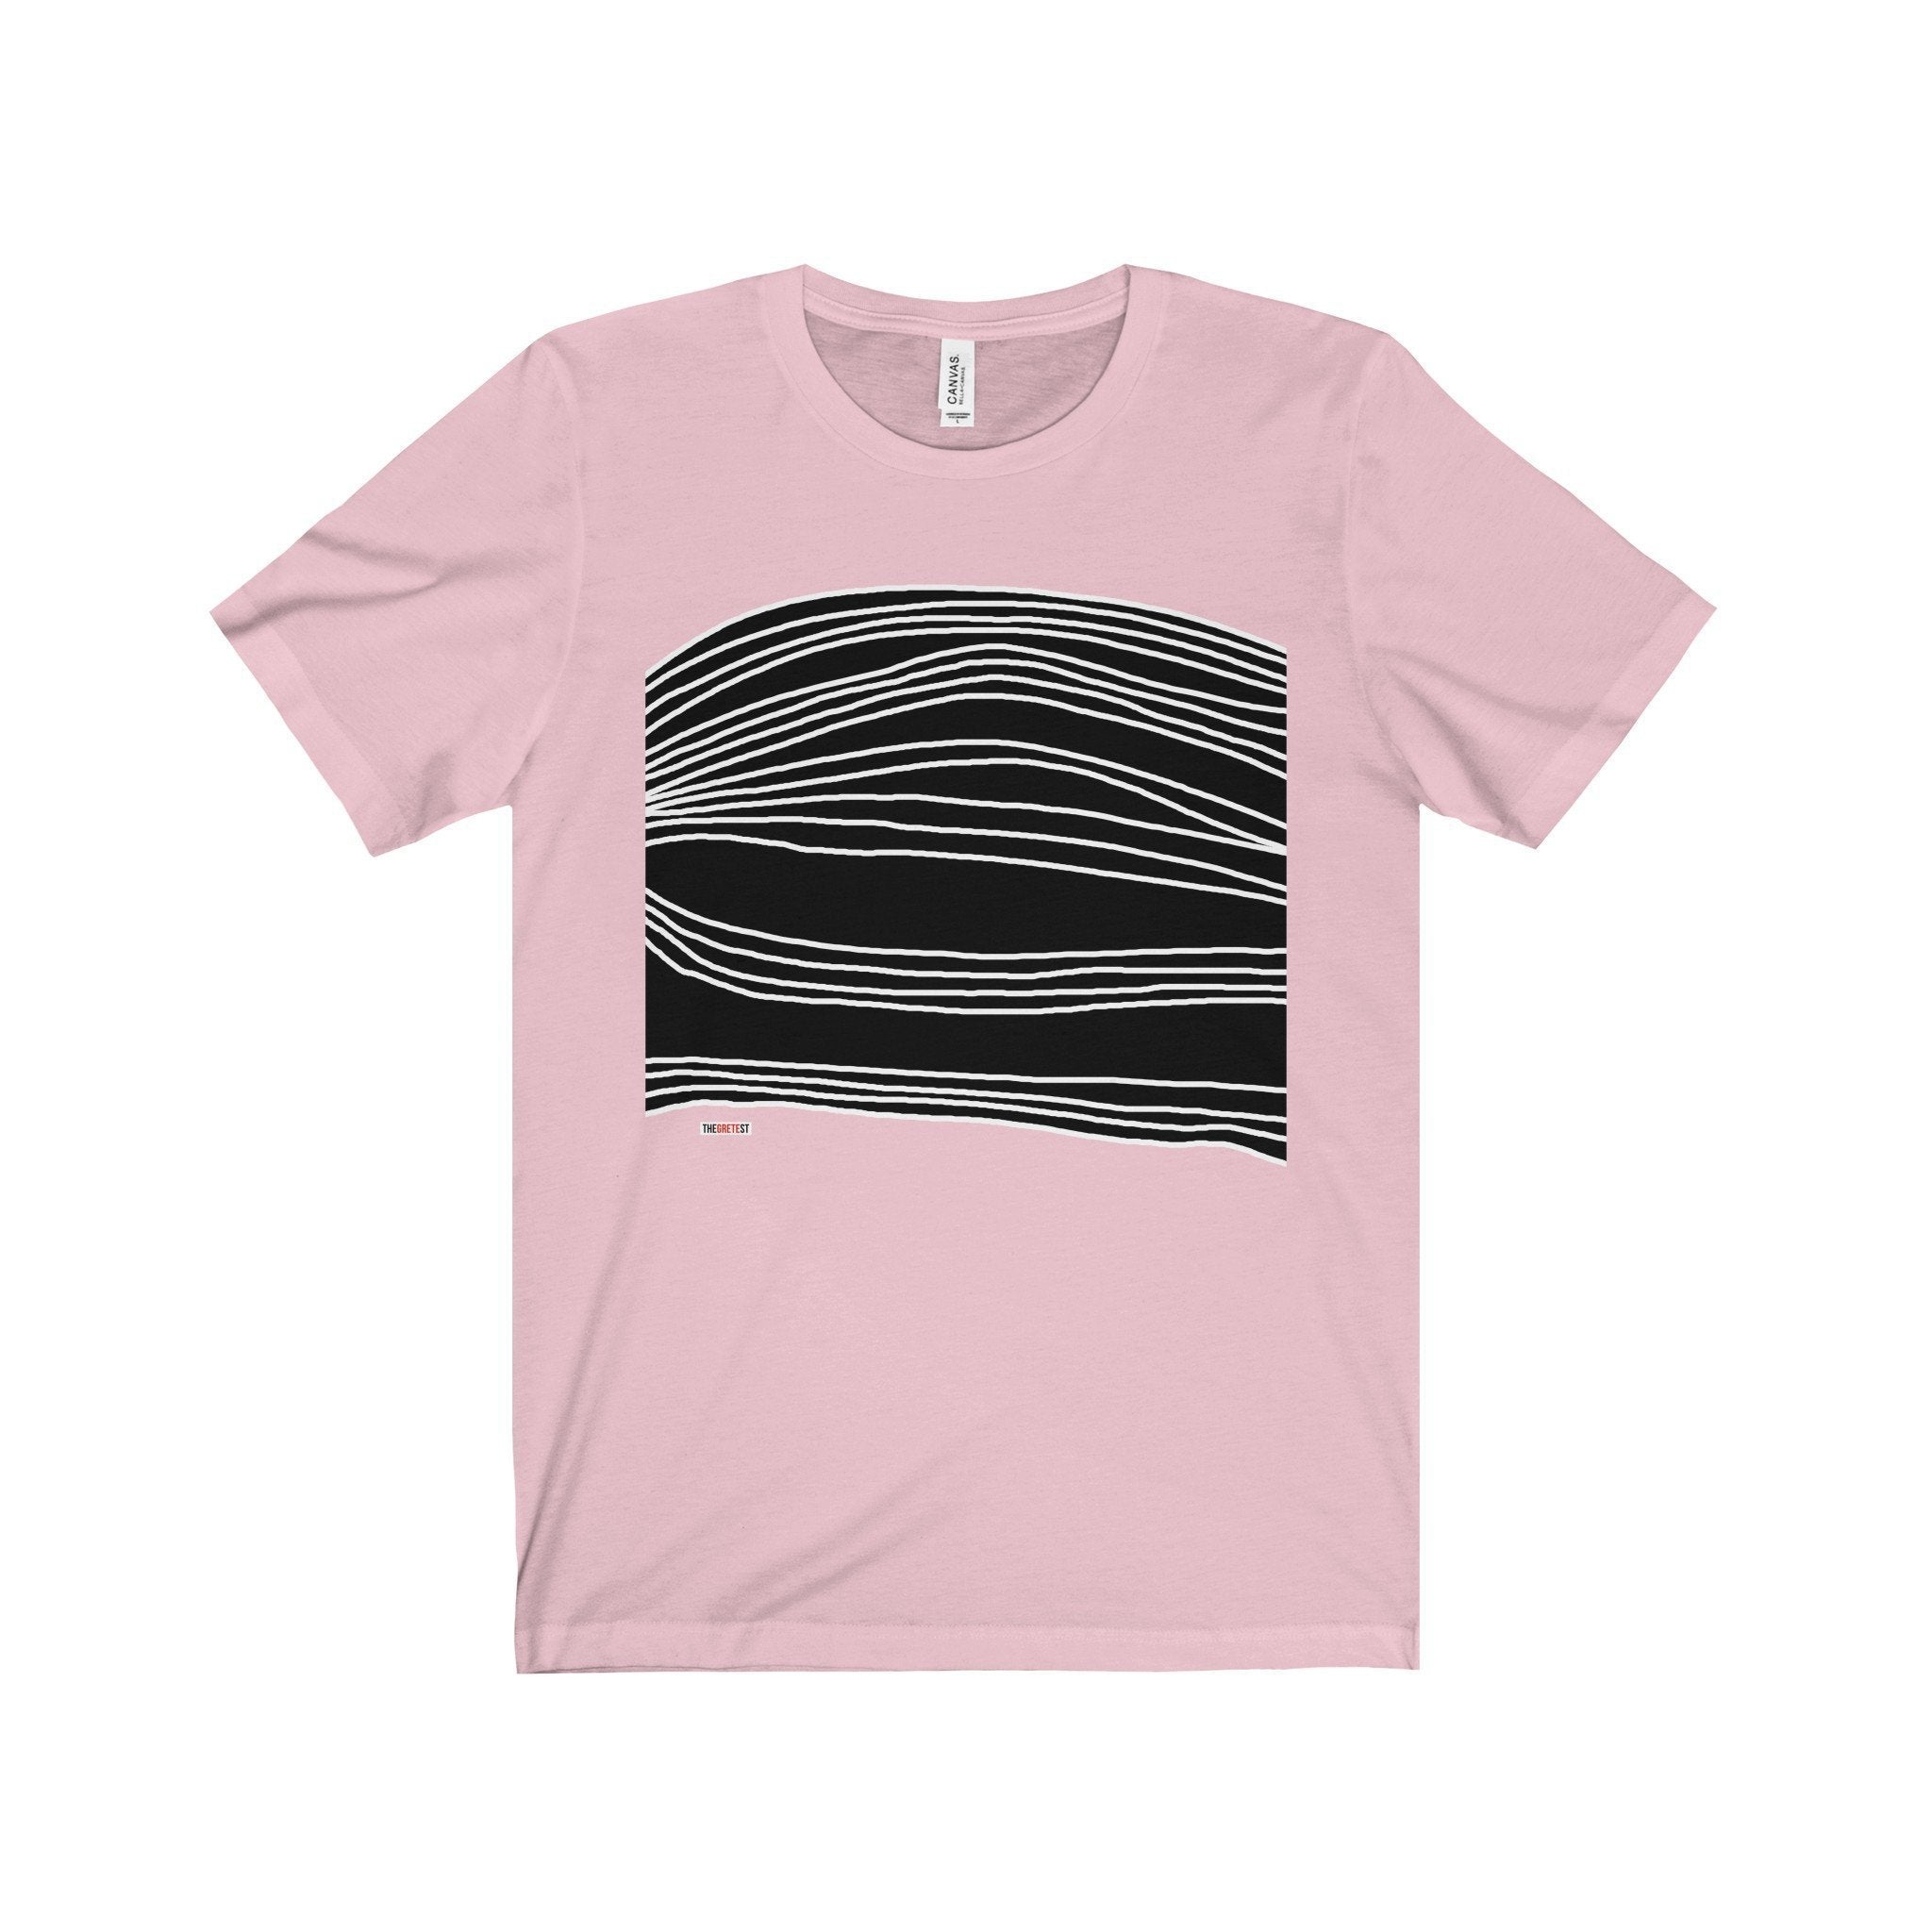 White Stripes on black T shirt (+14 Colors)-TheGretest